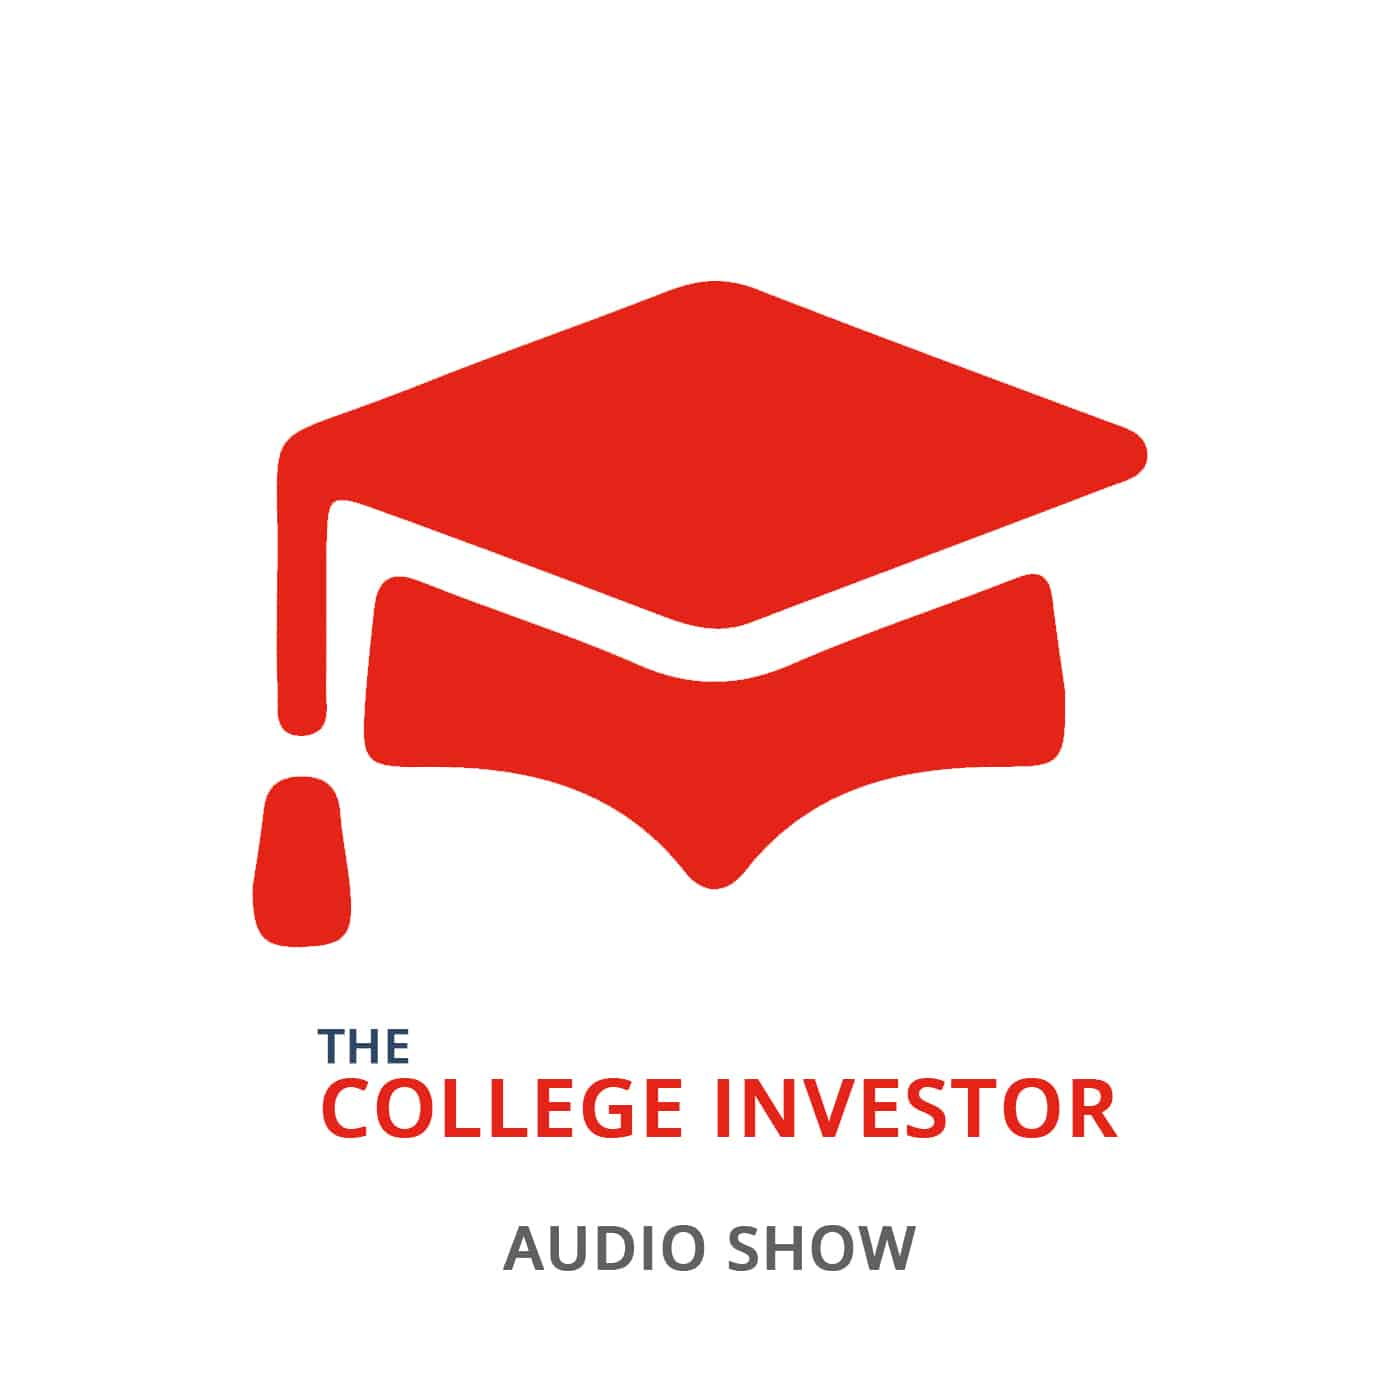 The College Investor Audio Show podcast logo